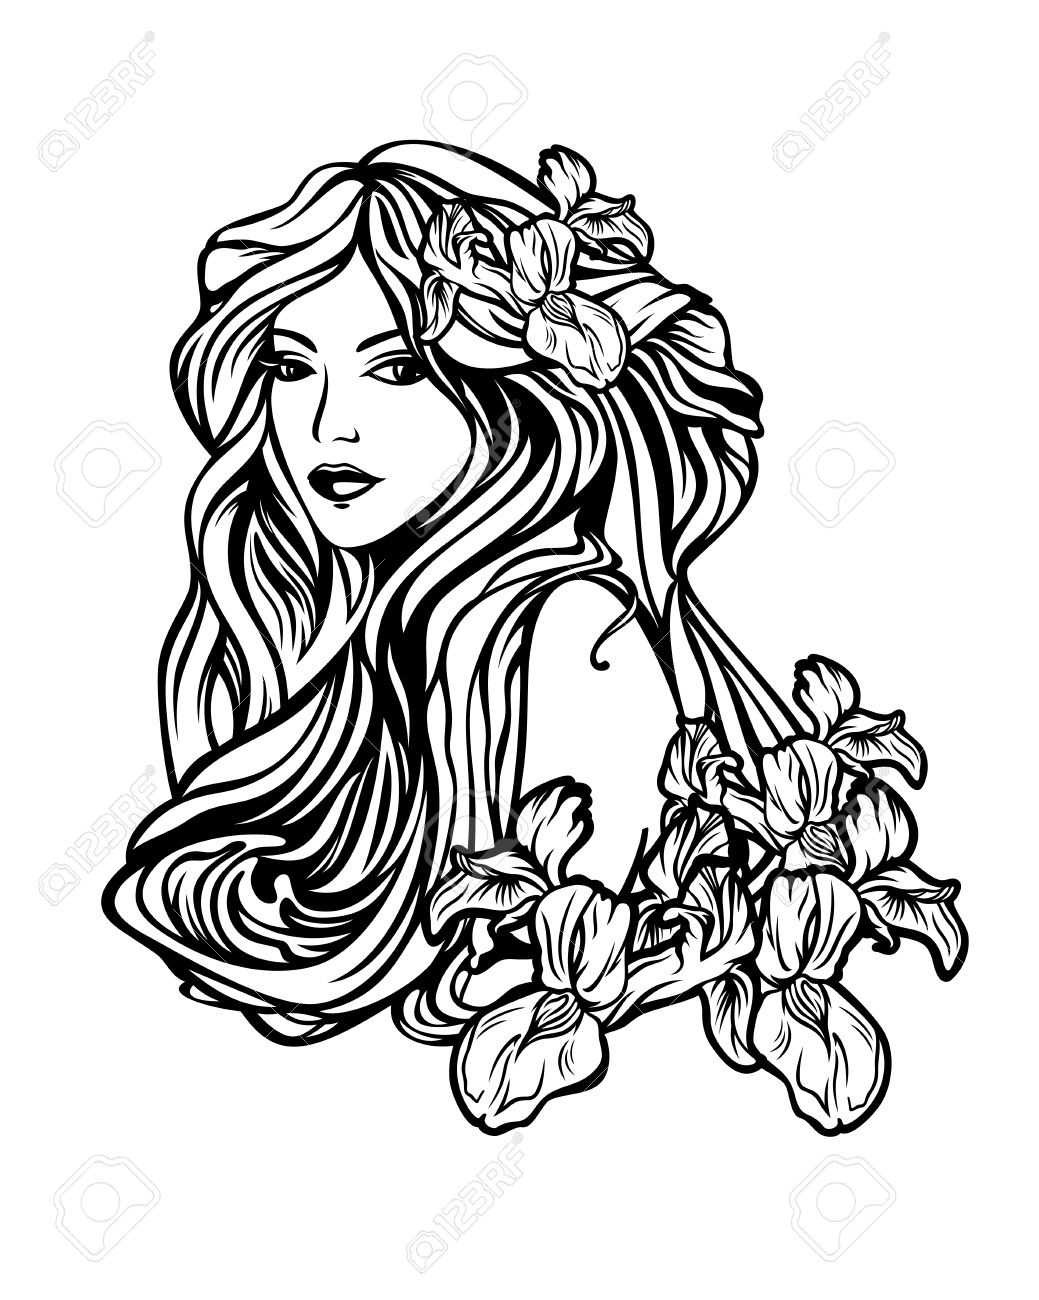 art nouveau woman stock photos and images 123rf Black and Gold Art Deco beautiful woman with long hair among iris flowers art nouveau style vector illustration